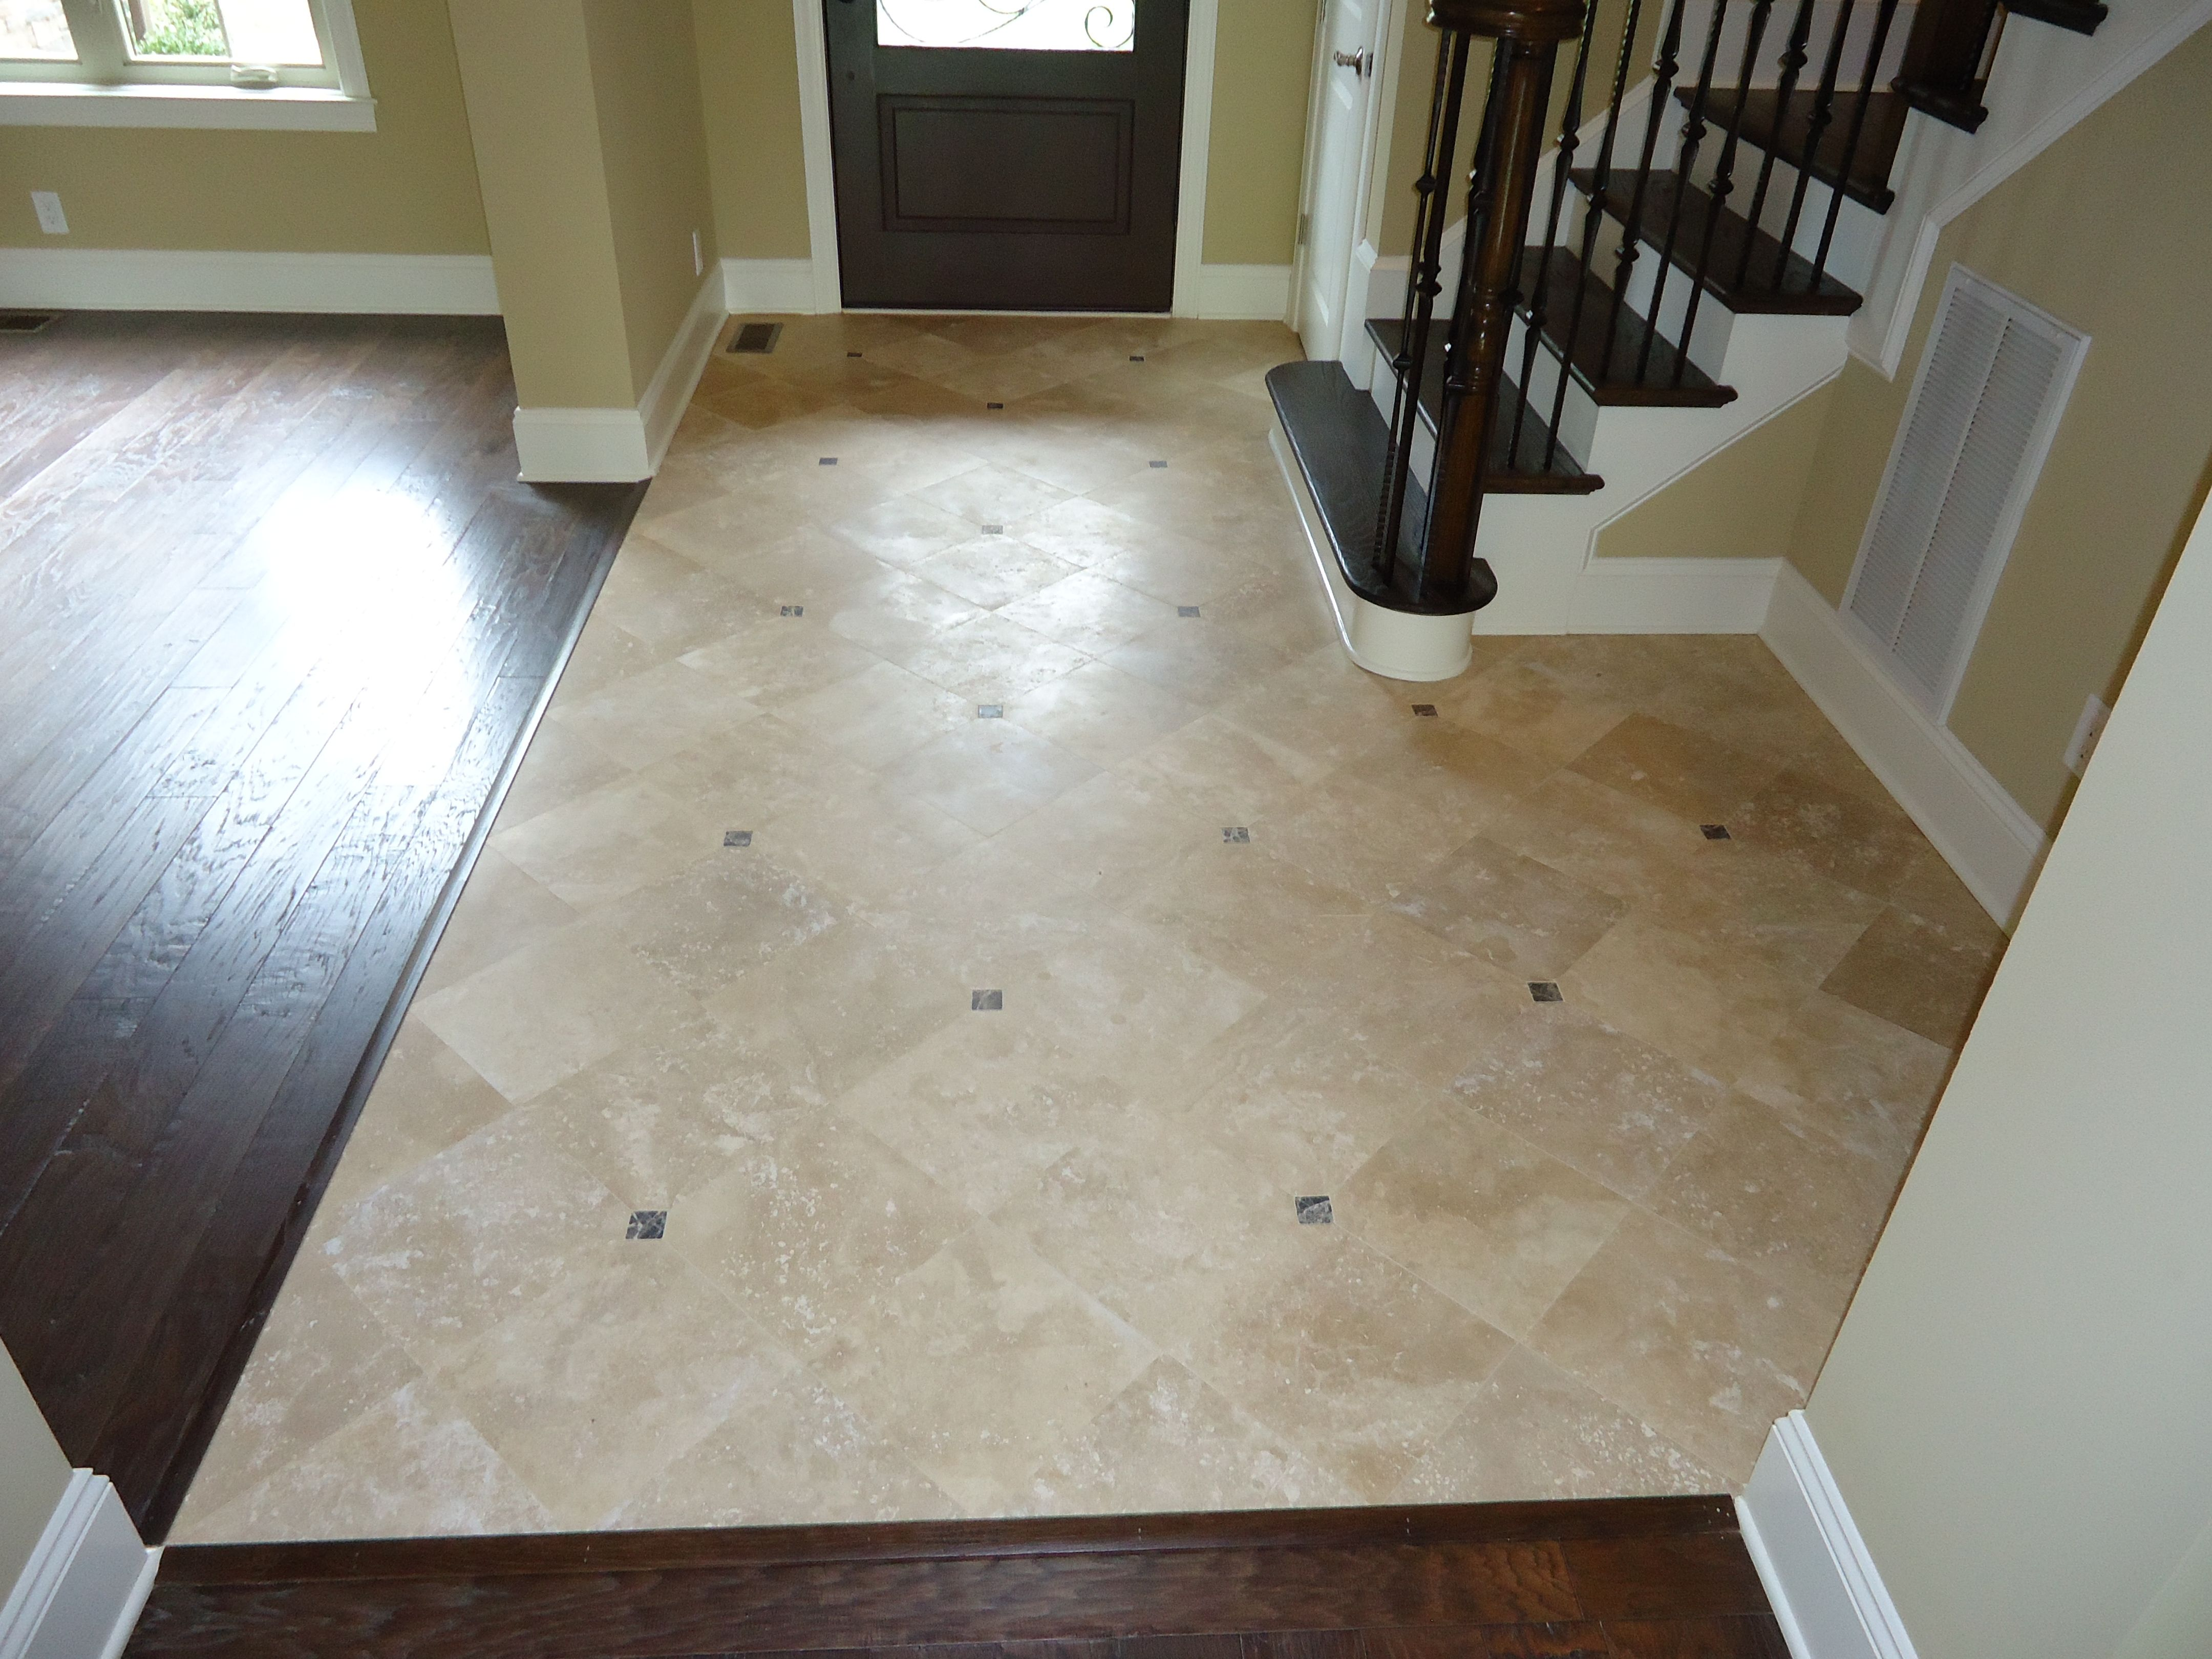 Travertine Foyer Design : Travertine with marble inset foyer a r h